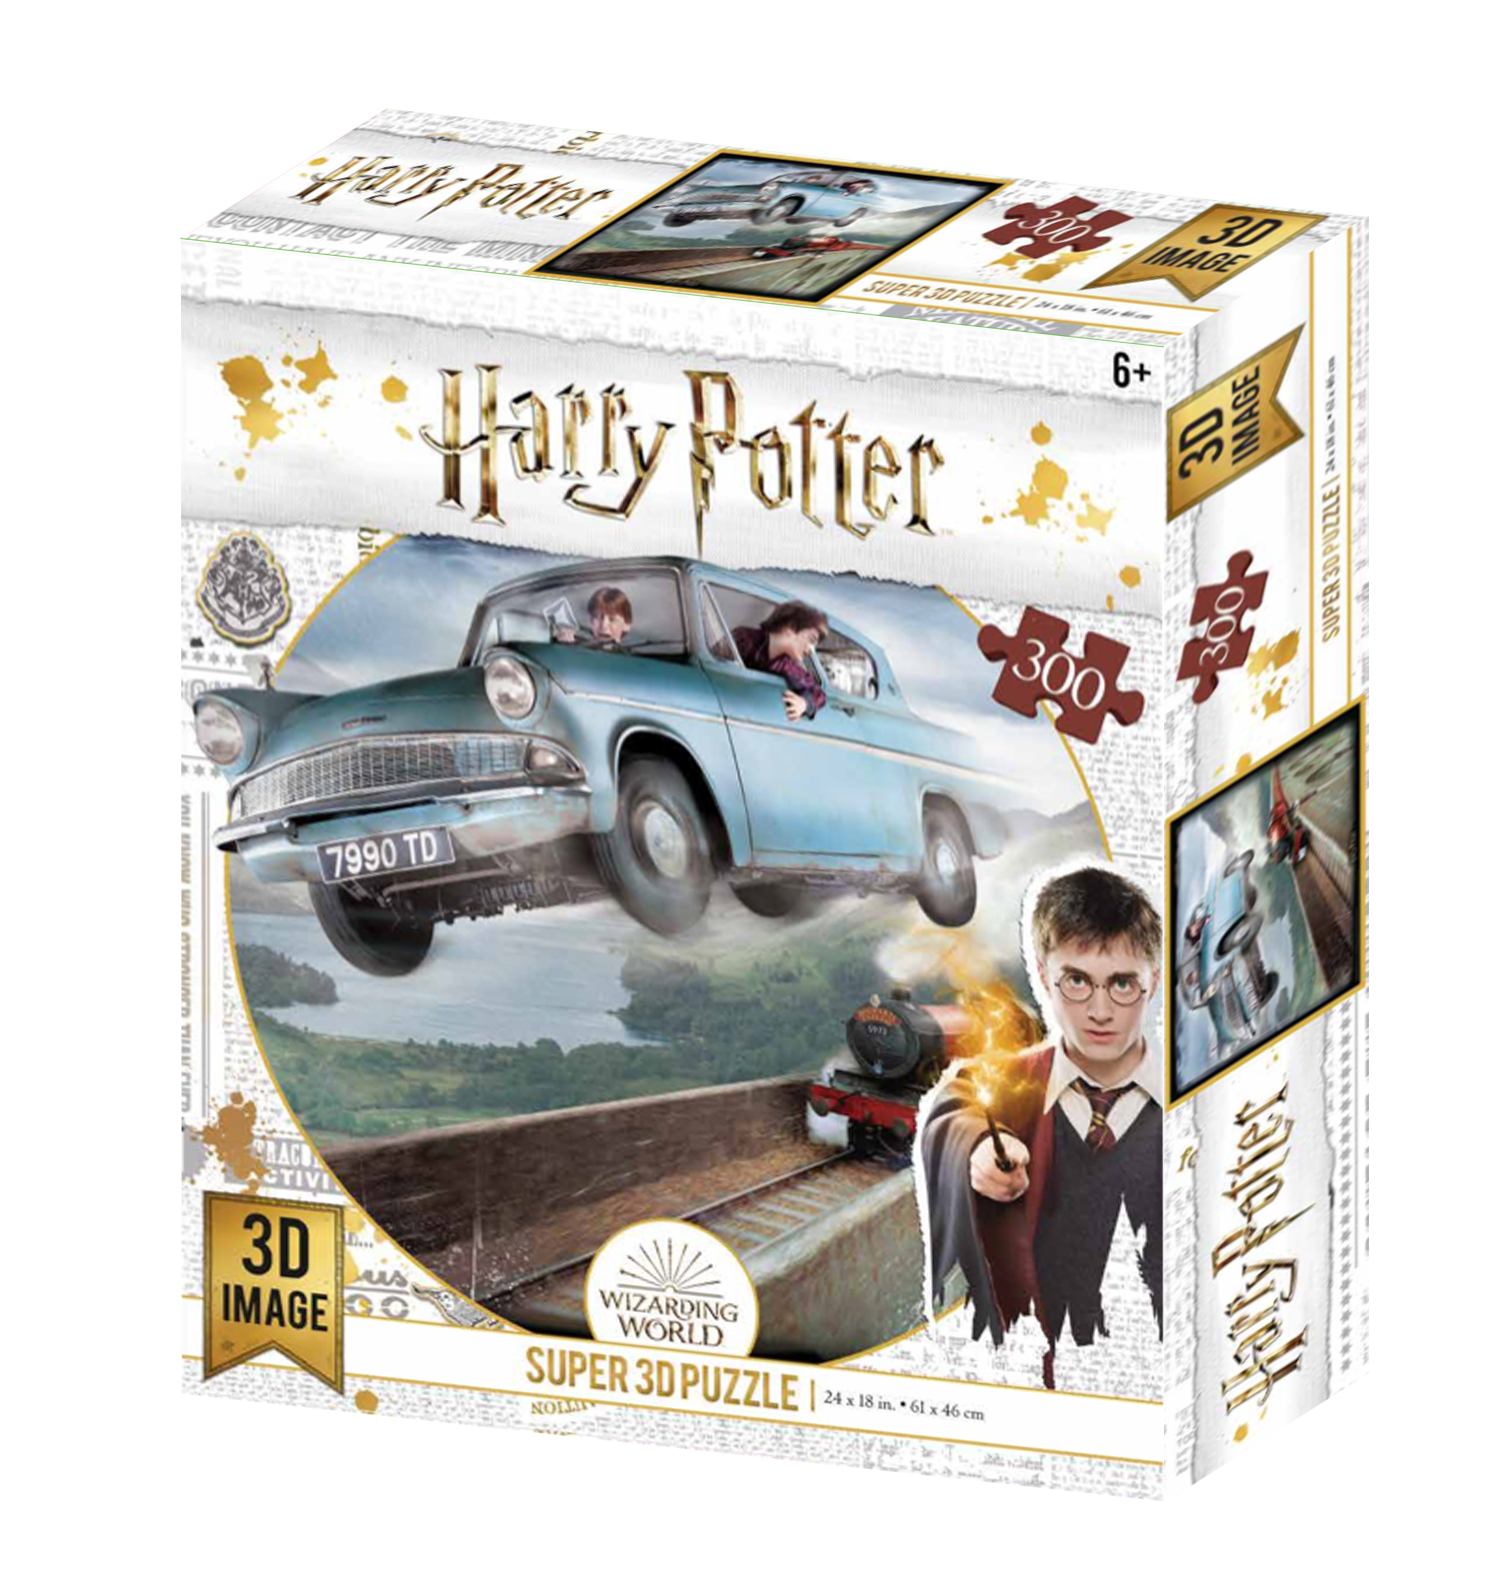 Super 3D: 300-Piece Jigsaw Puzzle - Harry Potter: Ford Anglia image